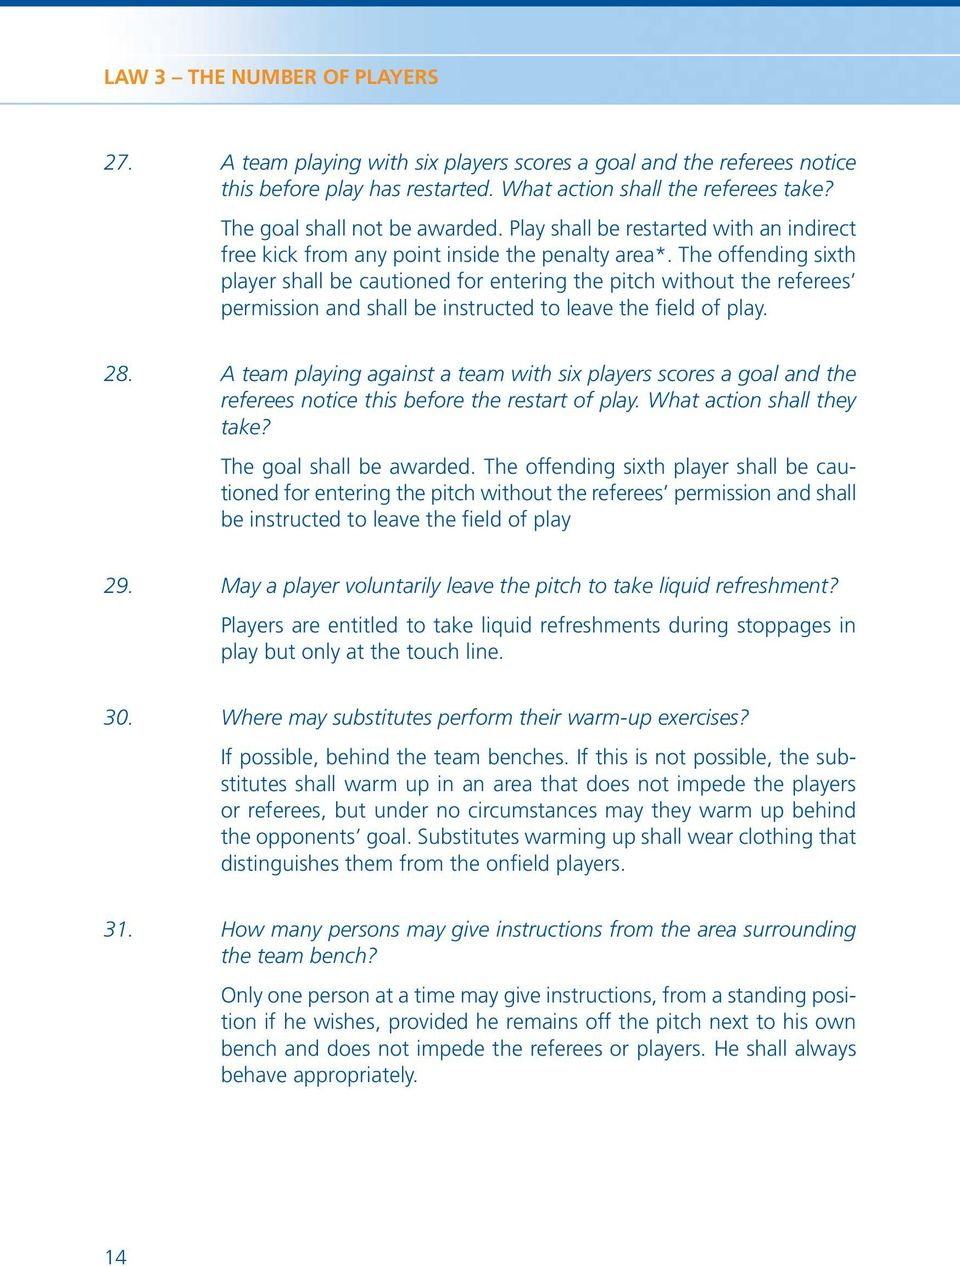 The offending sixth player shall be cautioned for entering the pitch without the referees permission and shall be instructed to leave the field of play. 28.